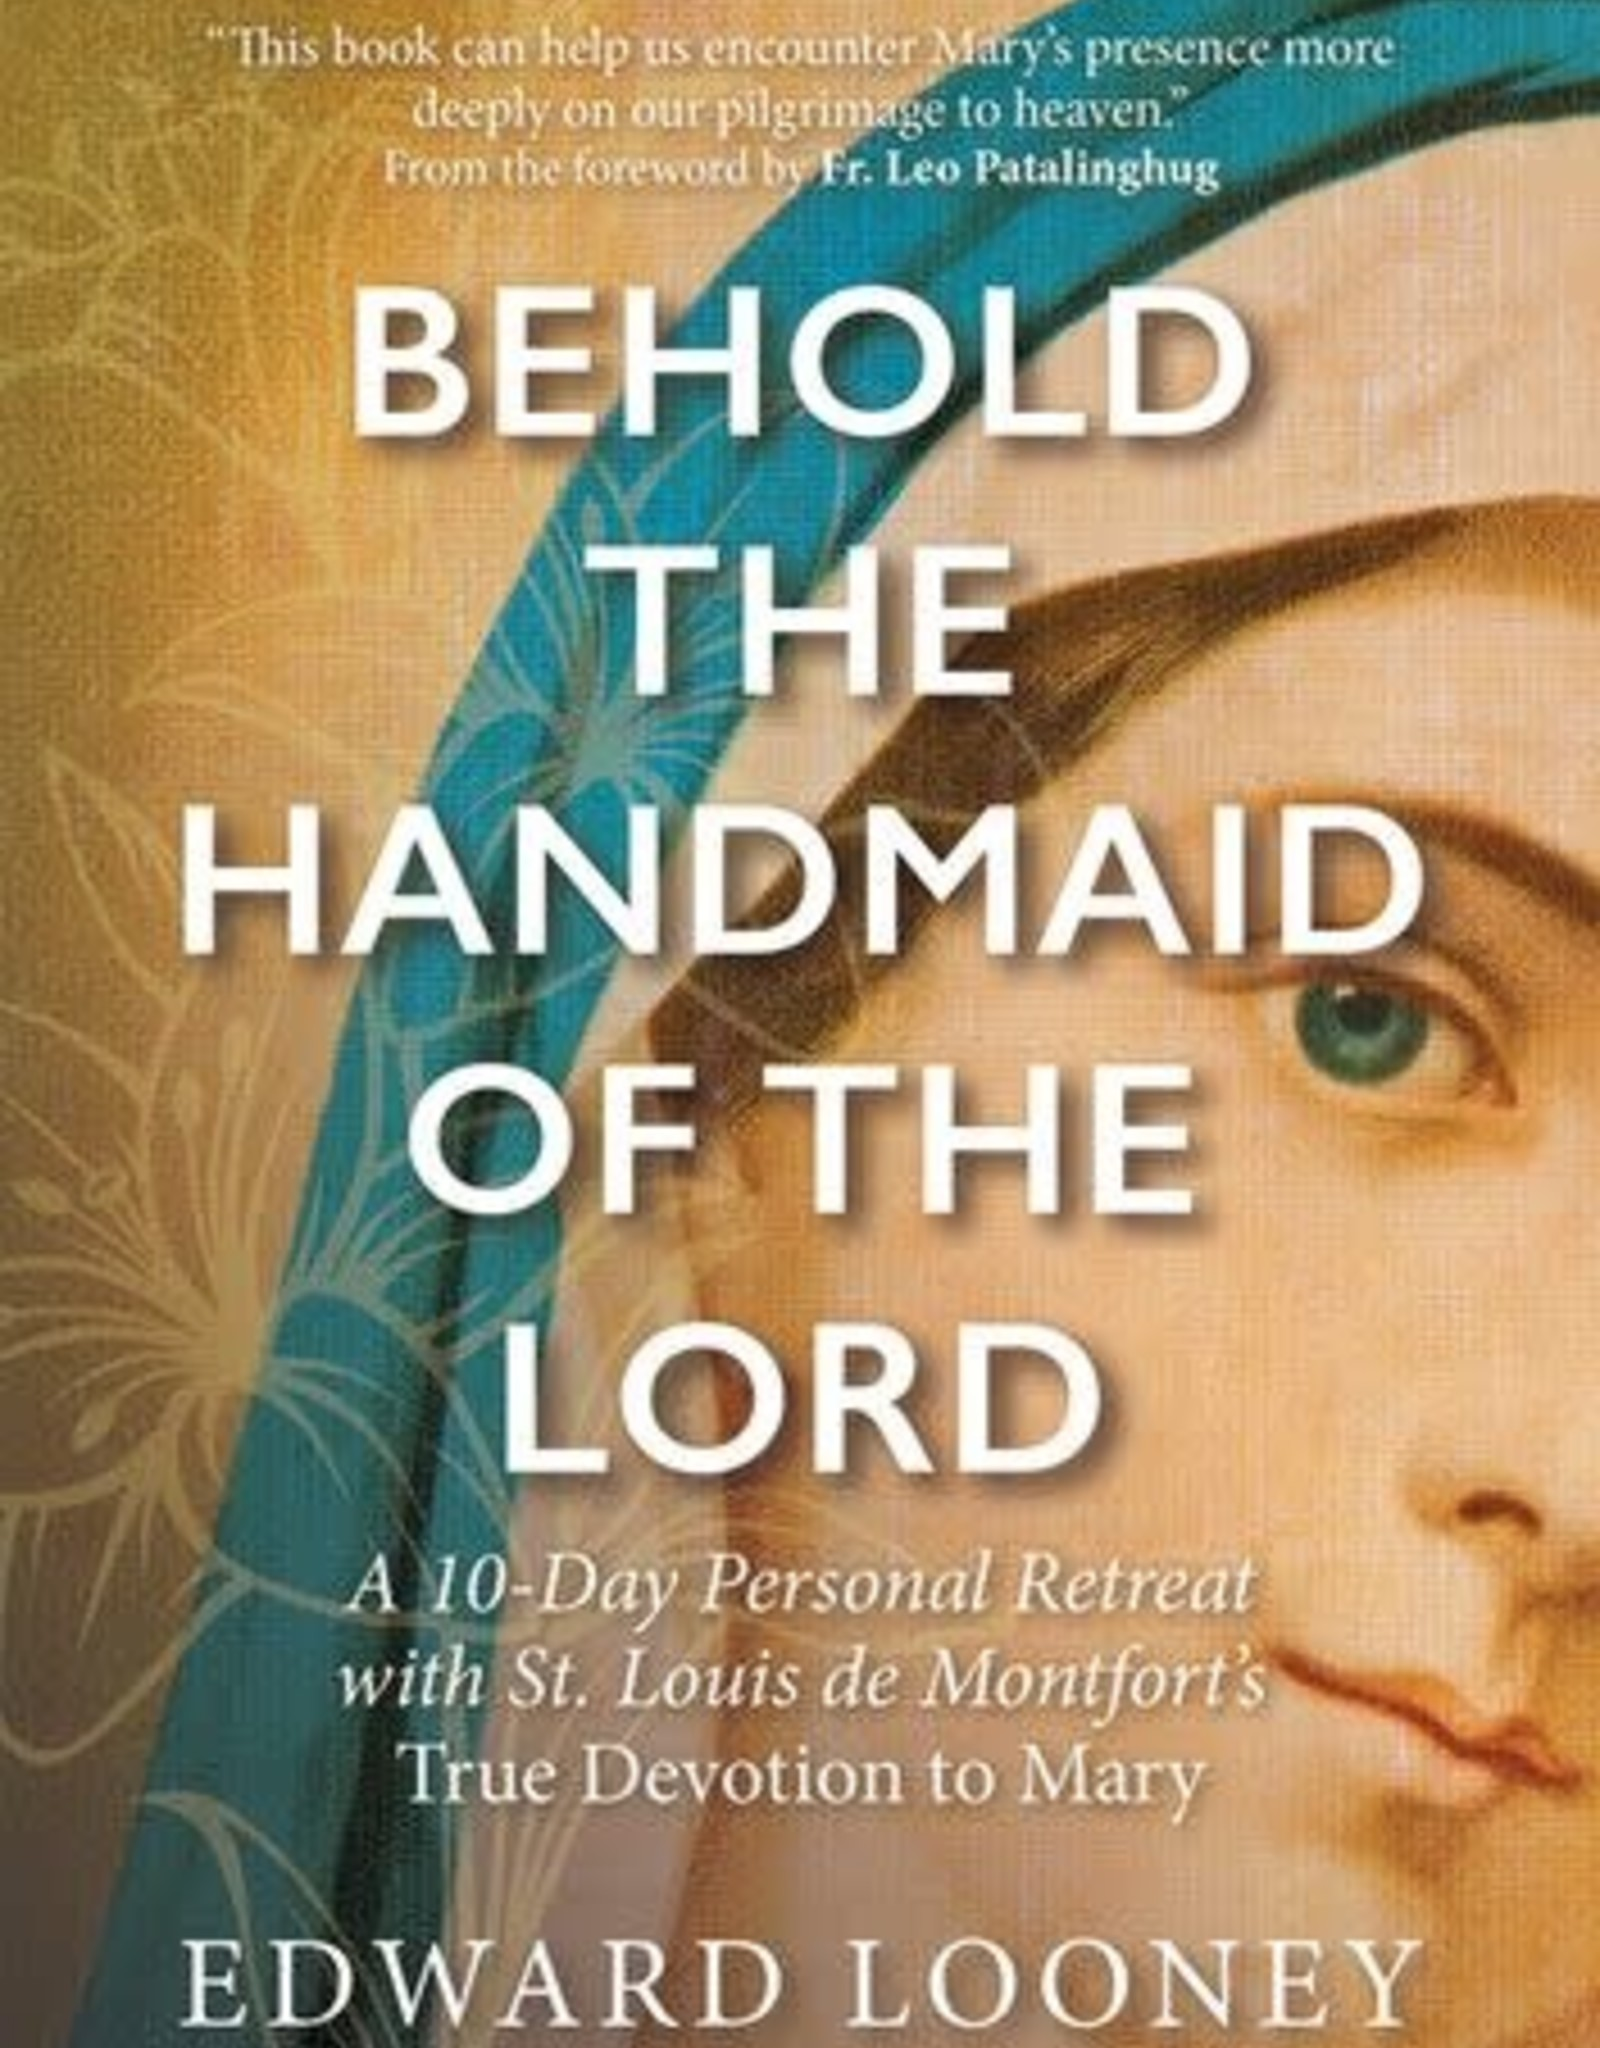 Behold the Handmaid of the Lord:  A 10-Day Personal Retreat w/ True Devotion to Mary, by Edward Looney